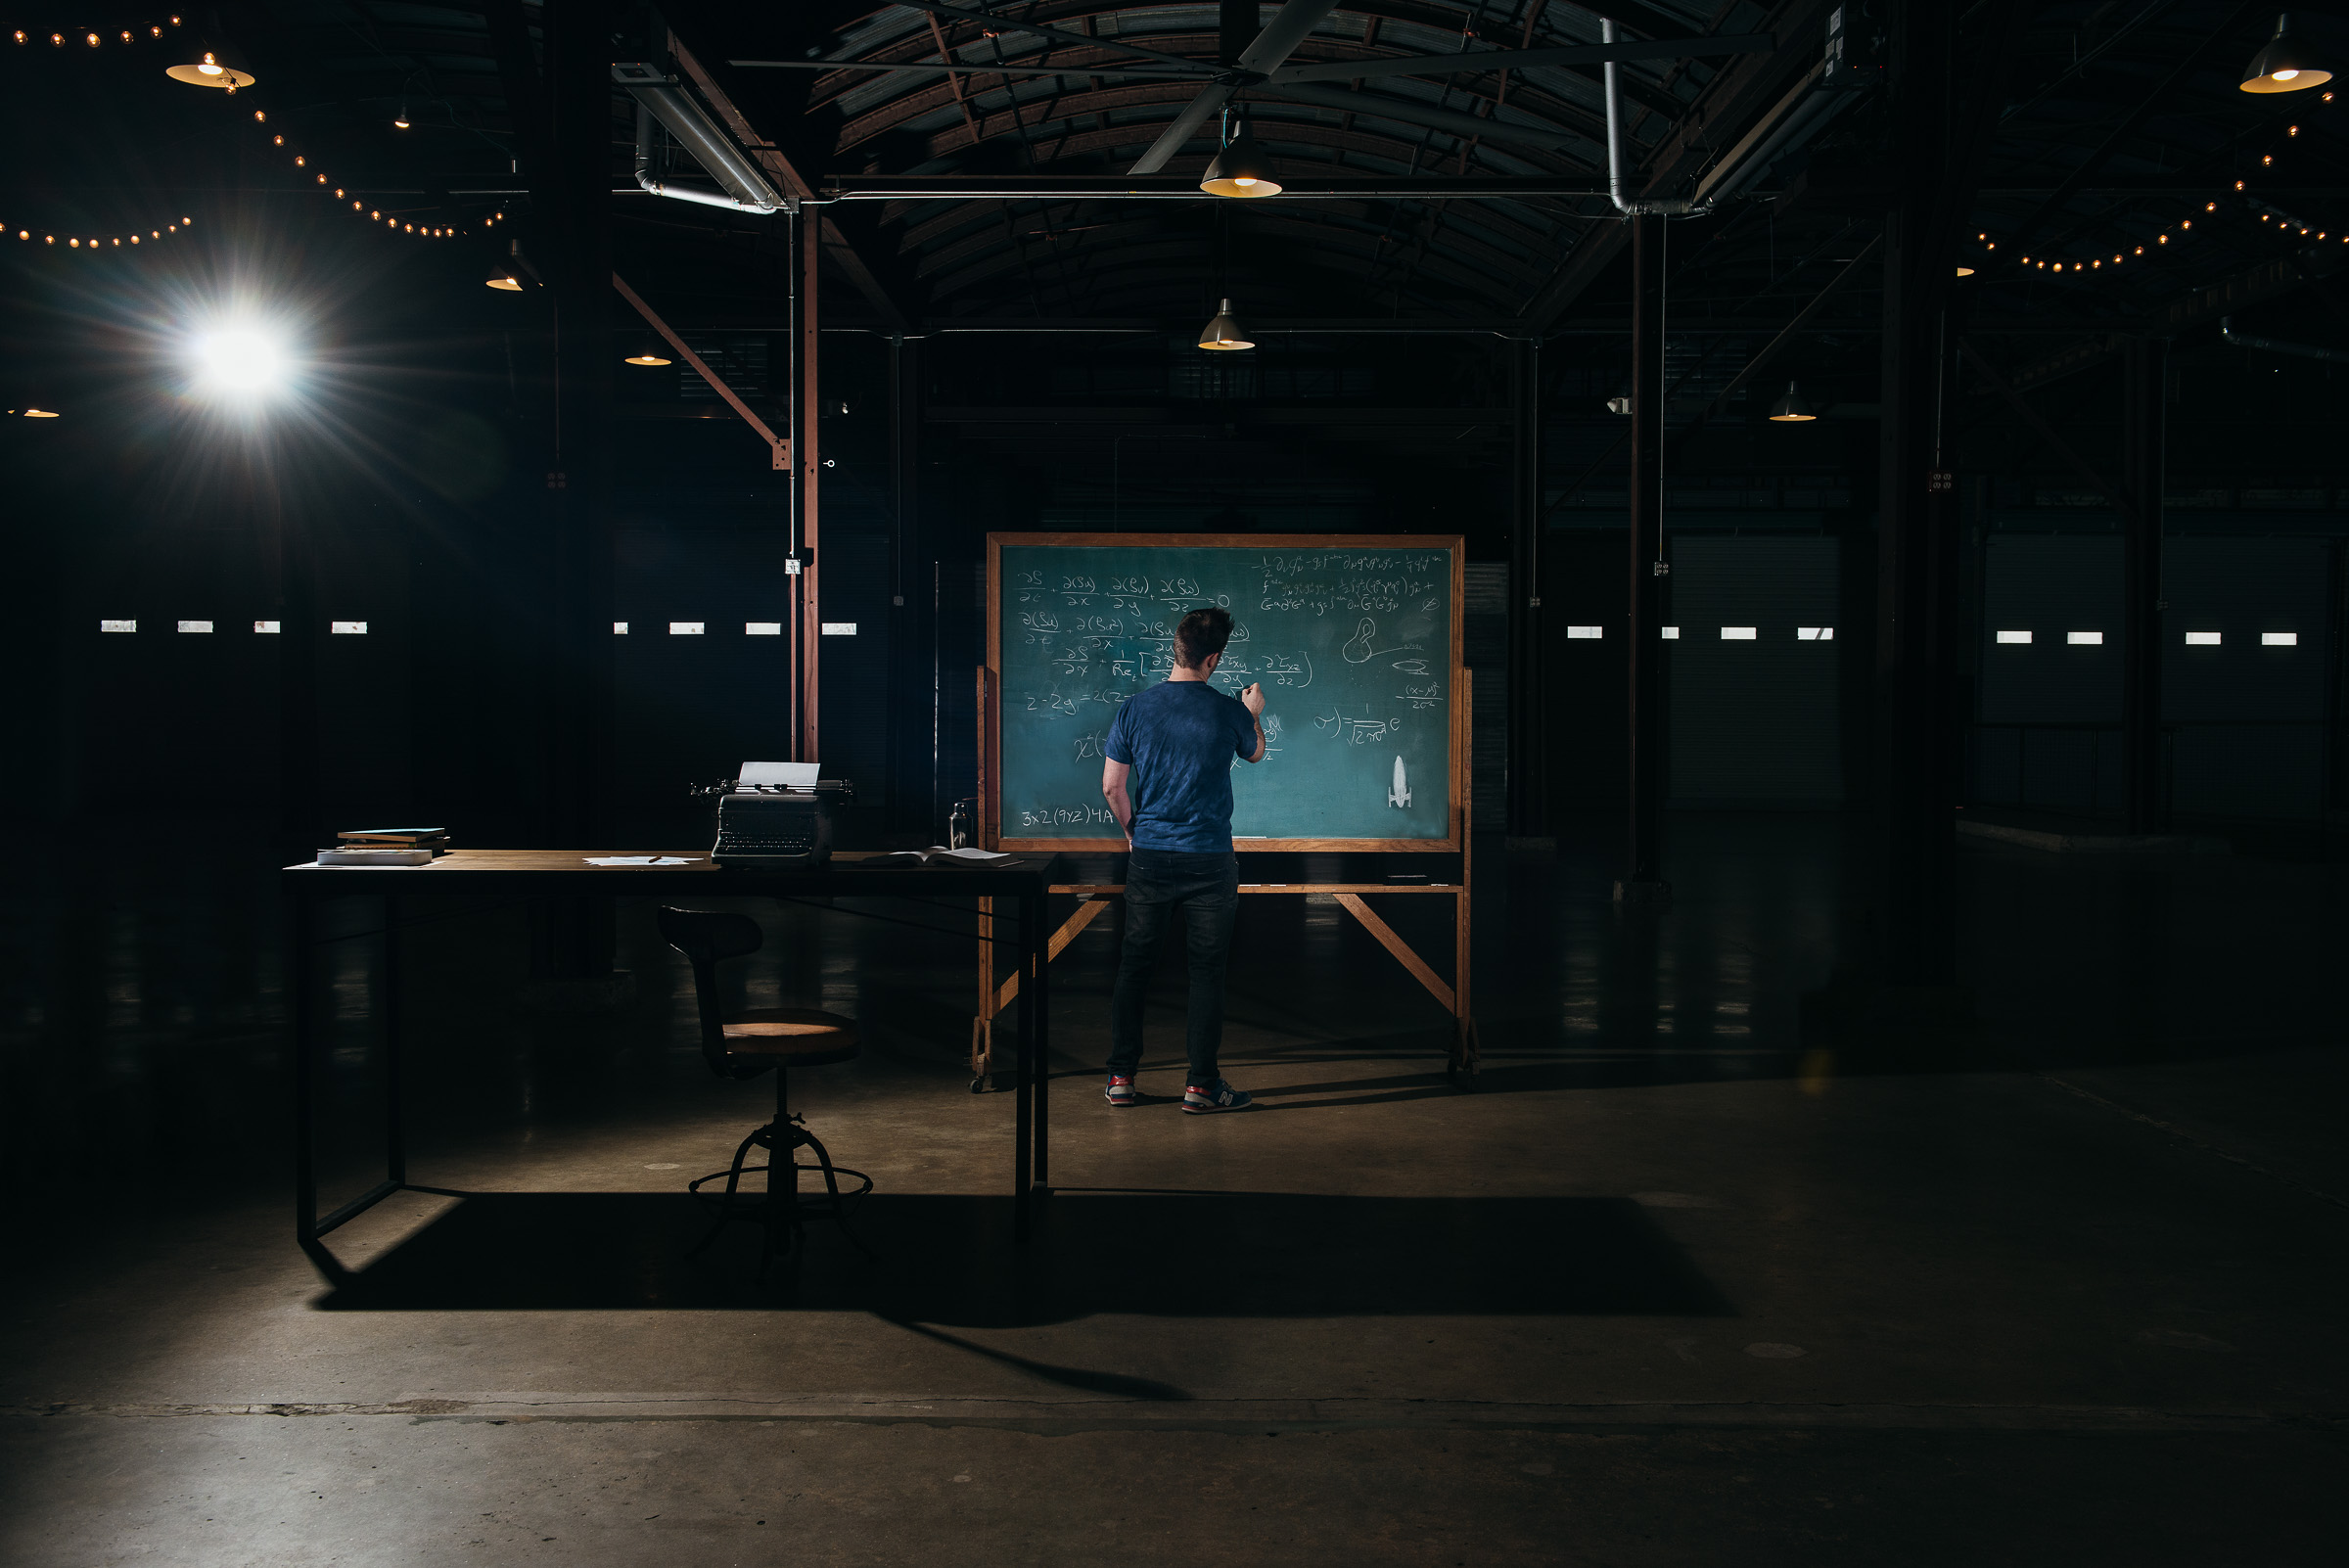 A lone corporate figure working on a chalk board late at night.